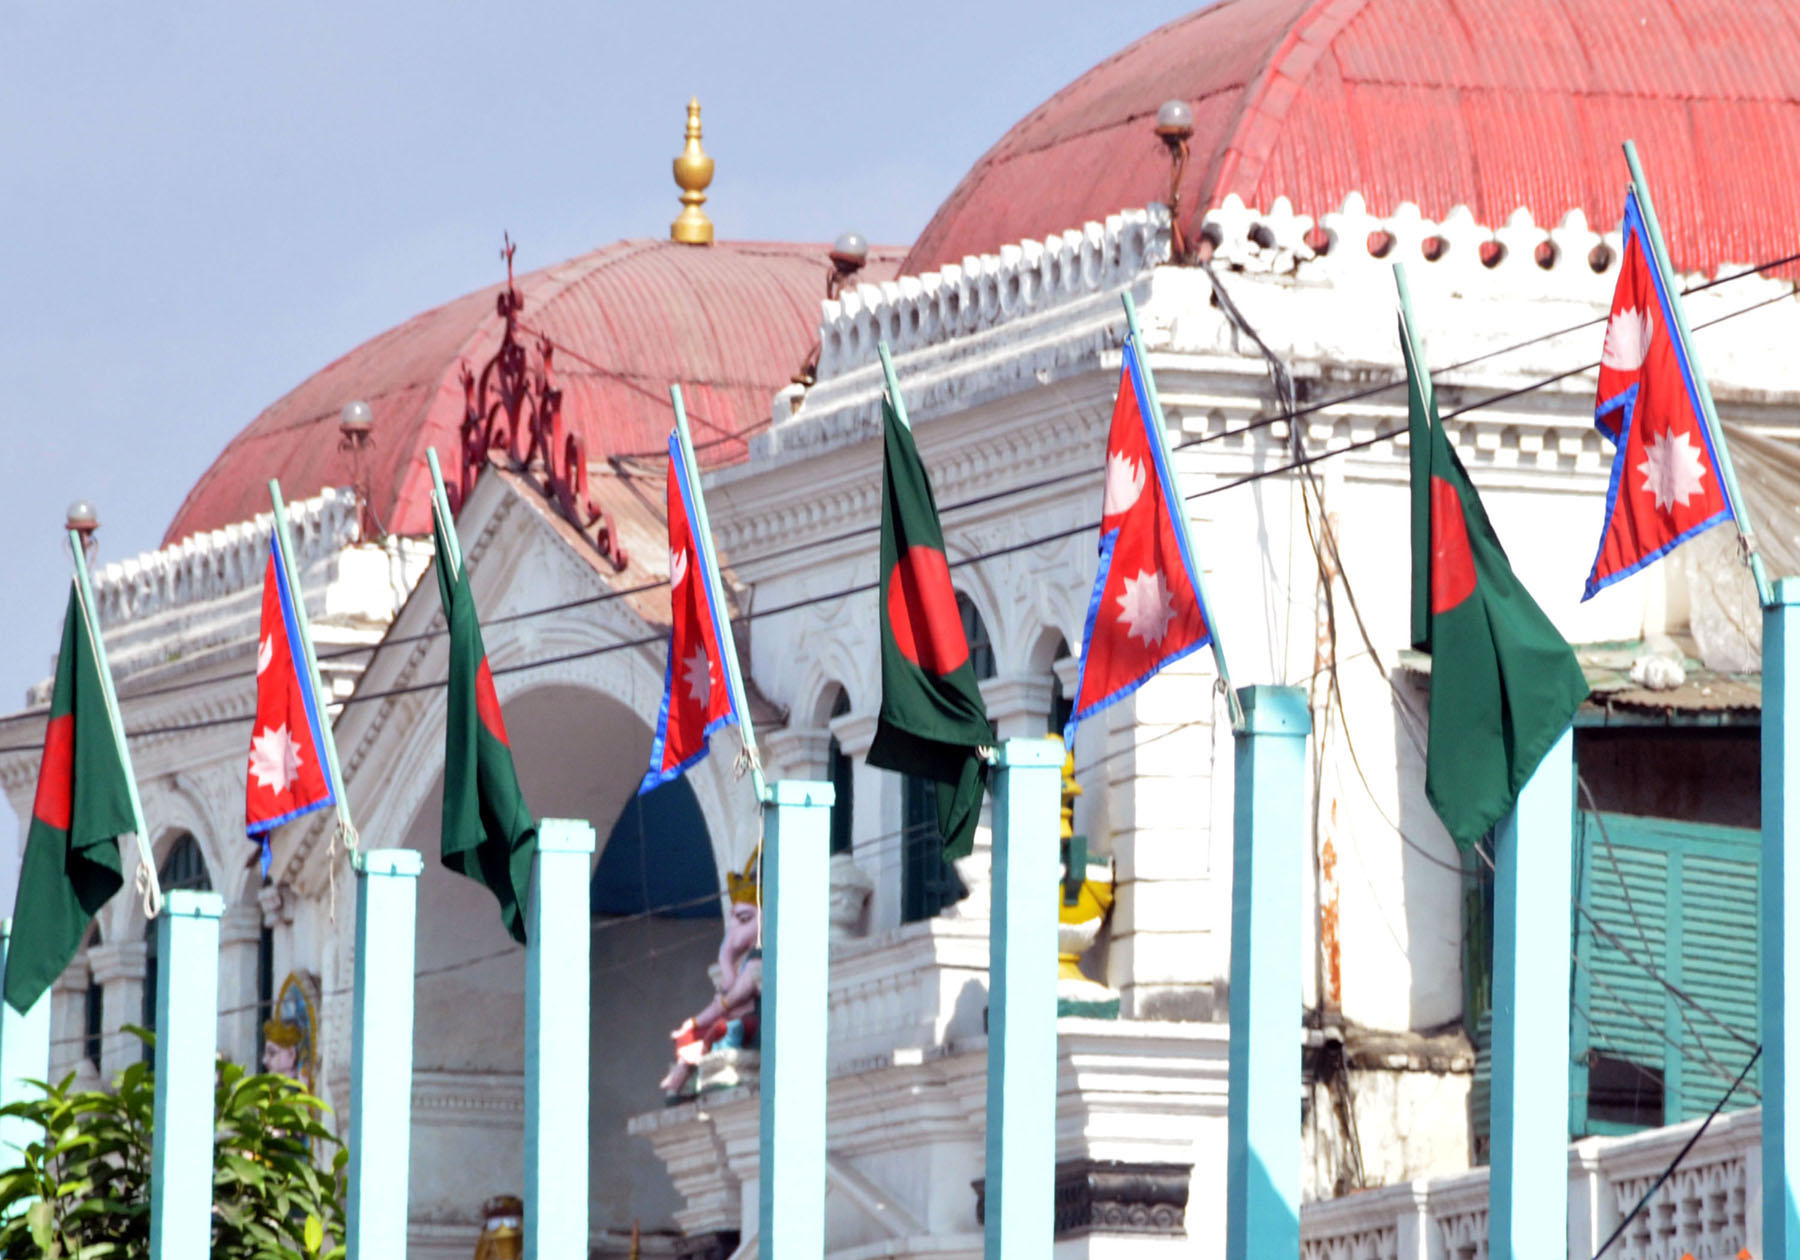 This image shows the national flags of Nepal and Bangladesh hung at the roadside poles to welcome the President of Bangladesh Mohammad Abdul Hamid, at Babarmahal in Kathmandu, on Tuesday, November 12, 2019. Photo: RSS